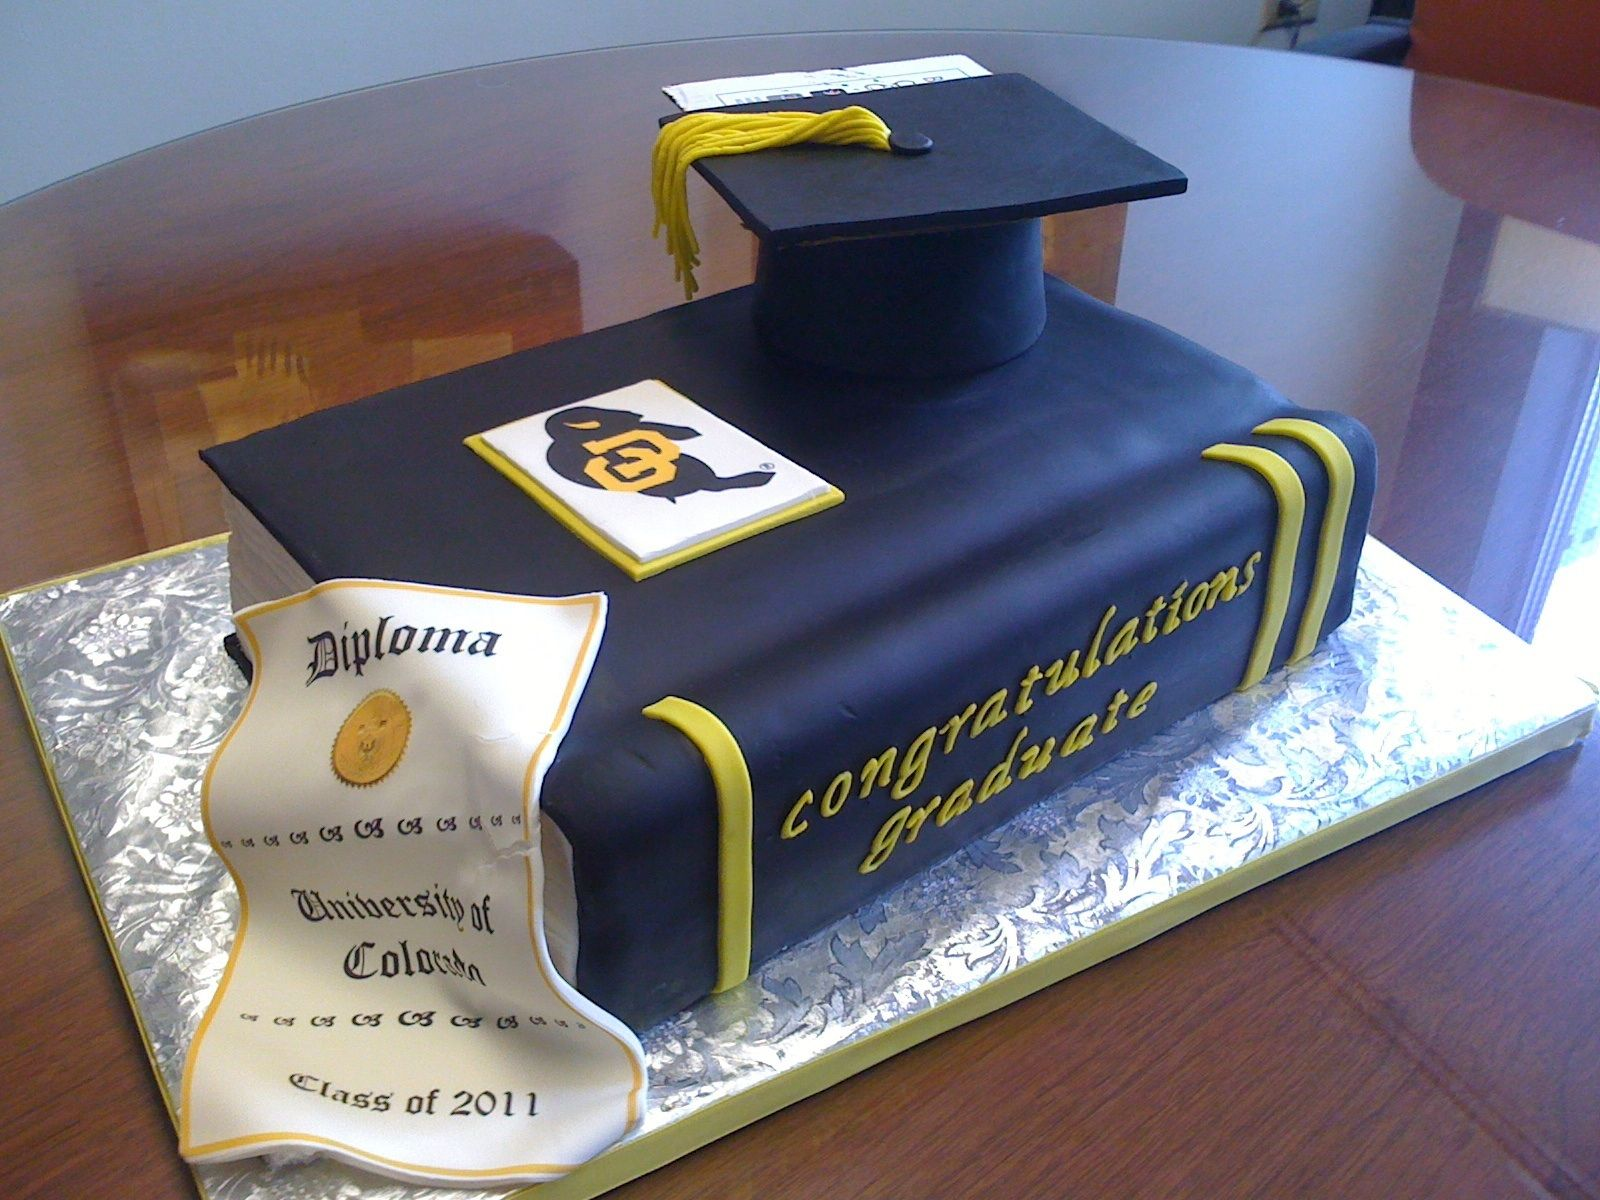 college graduation cakes google search graduation bbq college graduation cakes google search